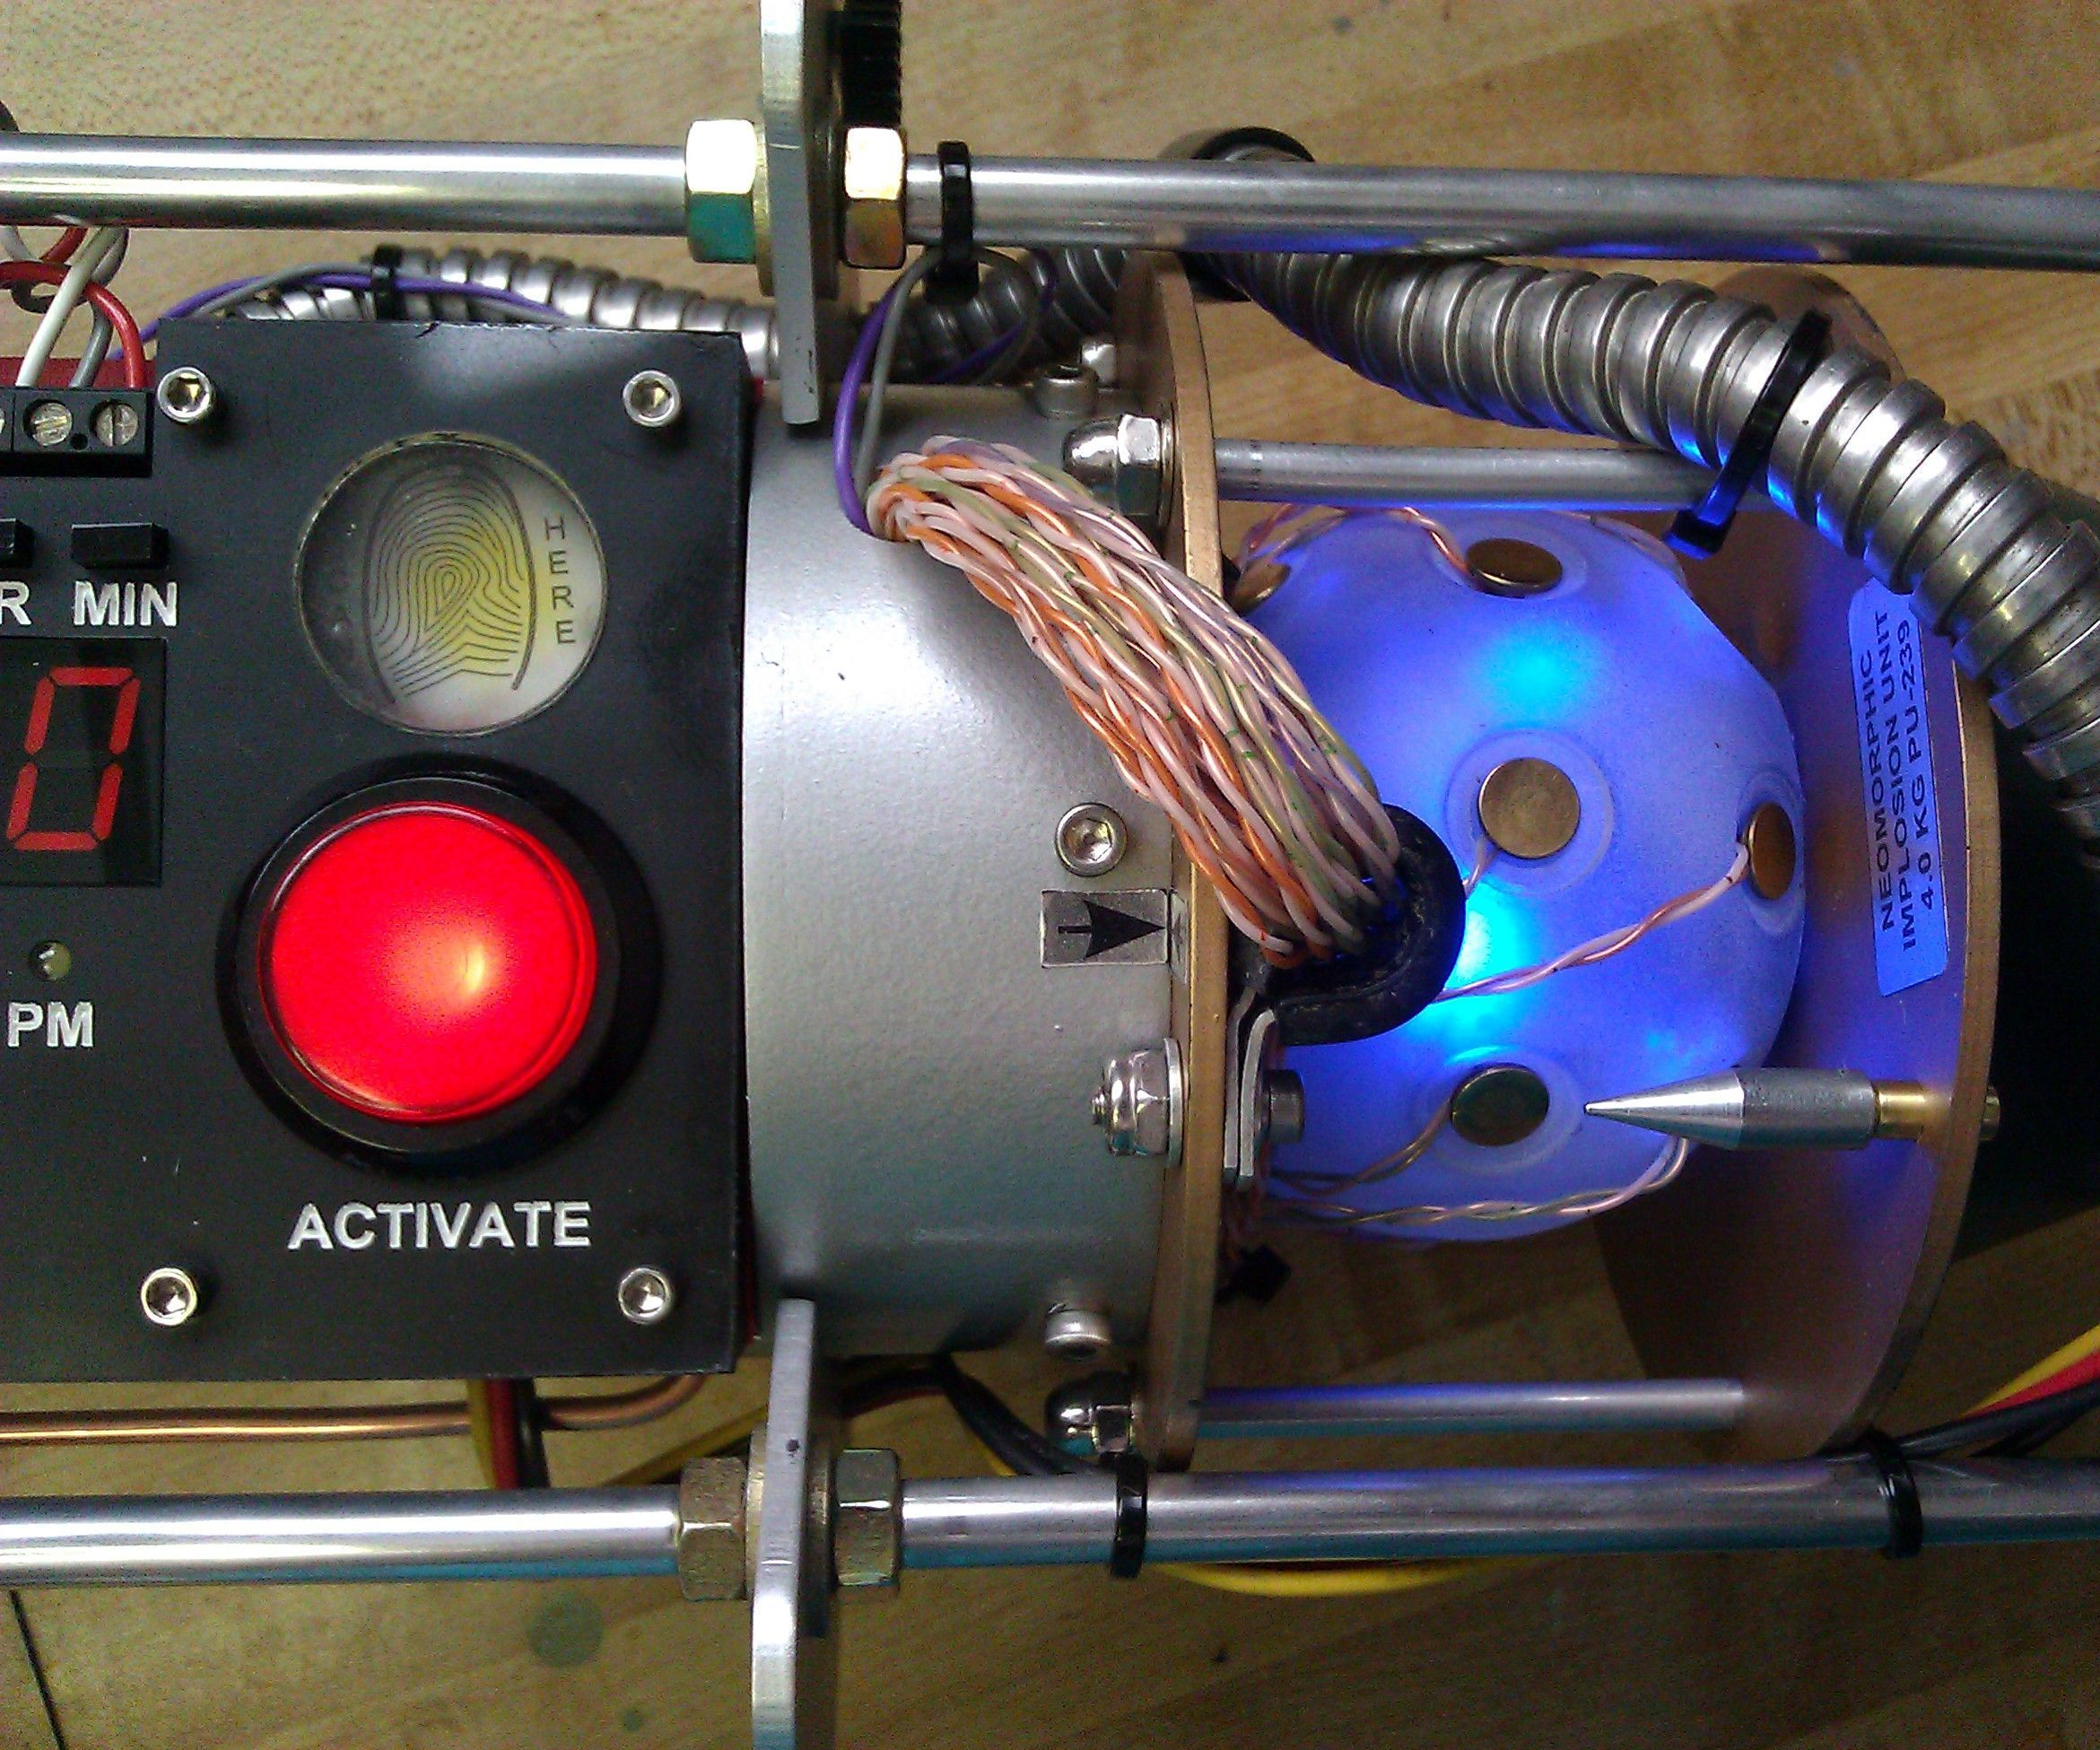 Antimatter Excavator/Alarm Clock/Movie Prop